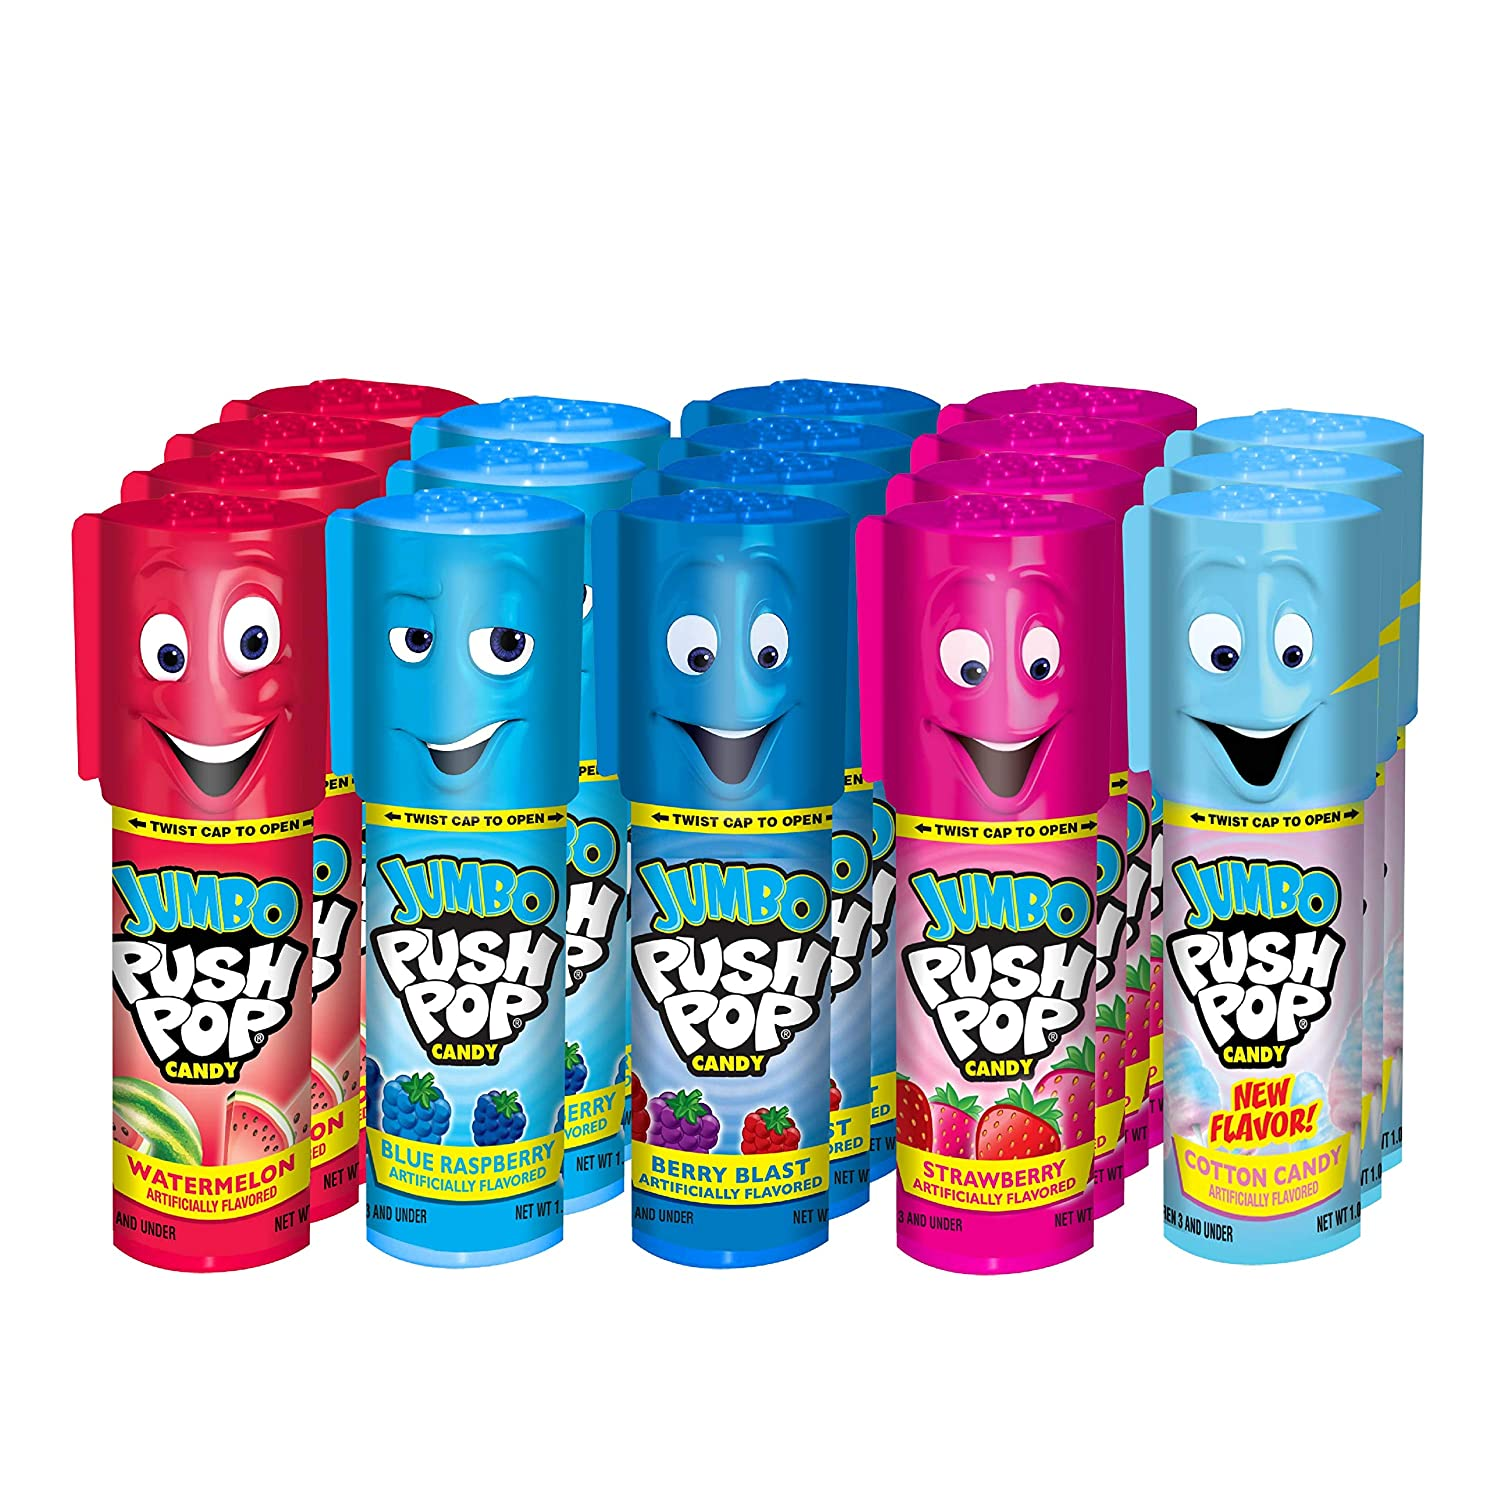 Push Pop Jumbo Candy Assortment Bulk 18 Pack – Blue Raspberry, Watermelon, Strawberry, Cotton Candy and Mystery Flavors, 1.06 Ounce (Pack of 1) (626-9LE)